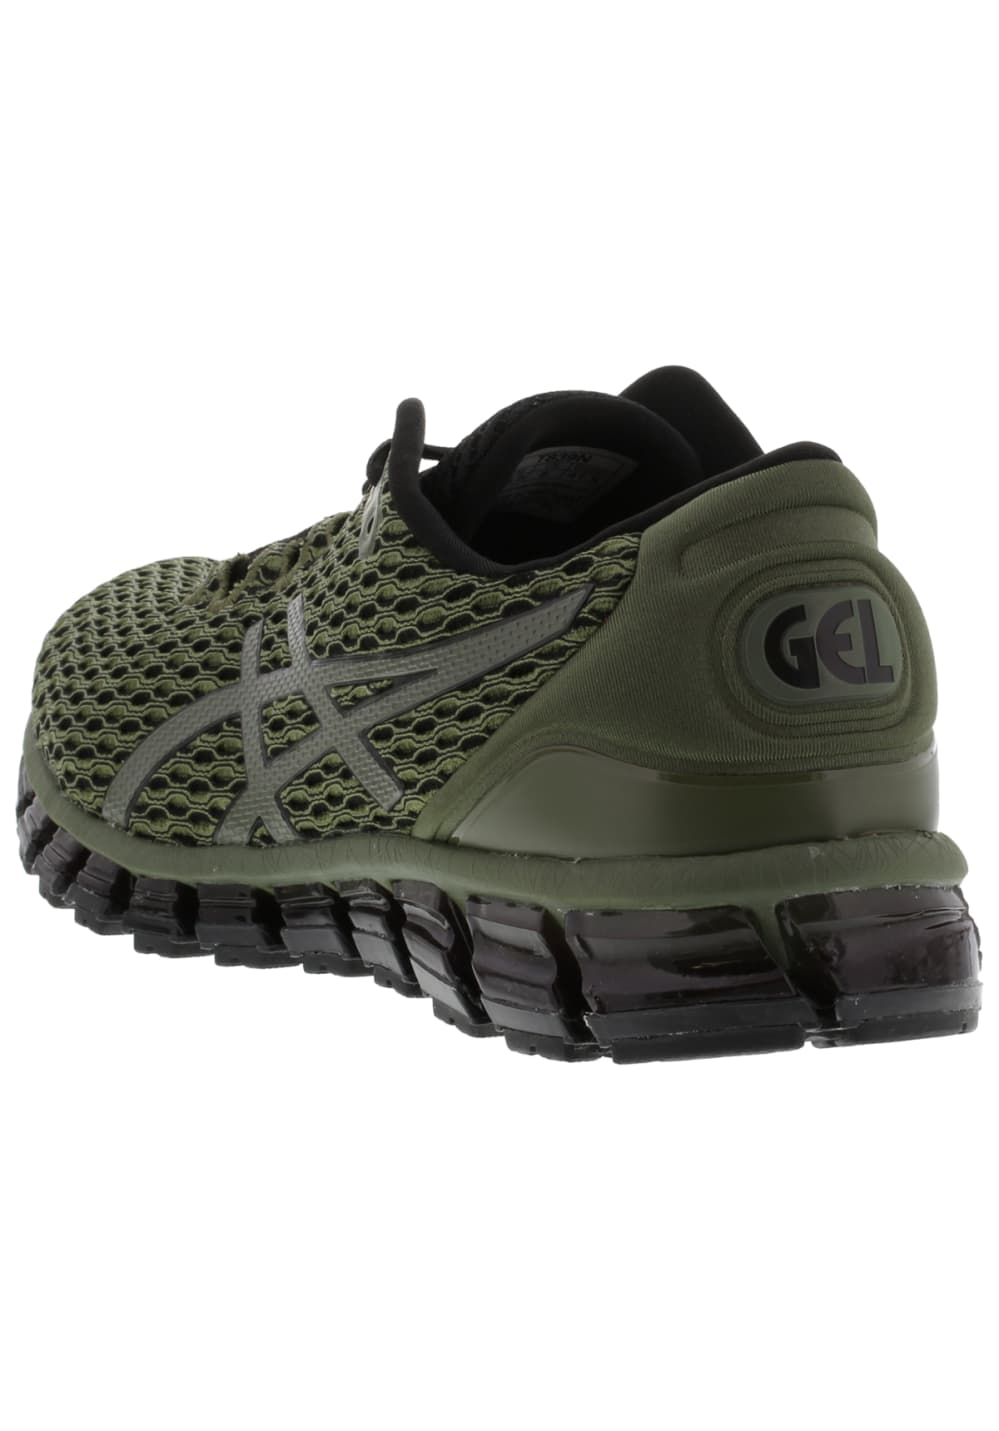 ASICS GEL-Quantum 360 Shift MX - Running shoes for Men - Green